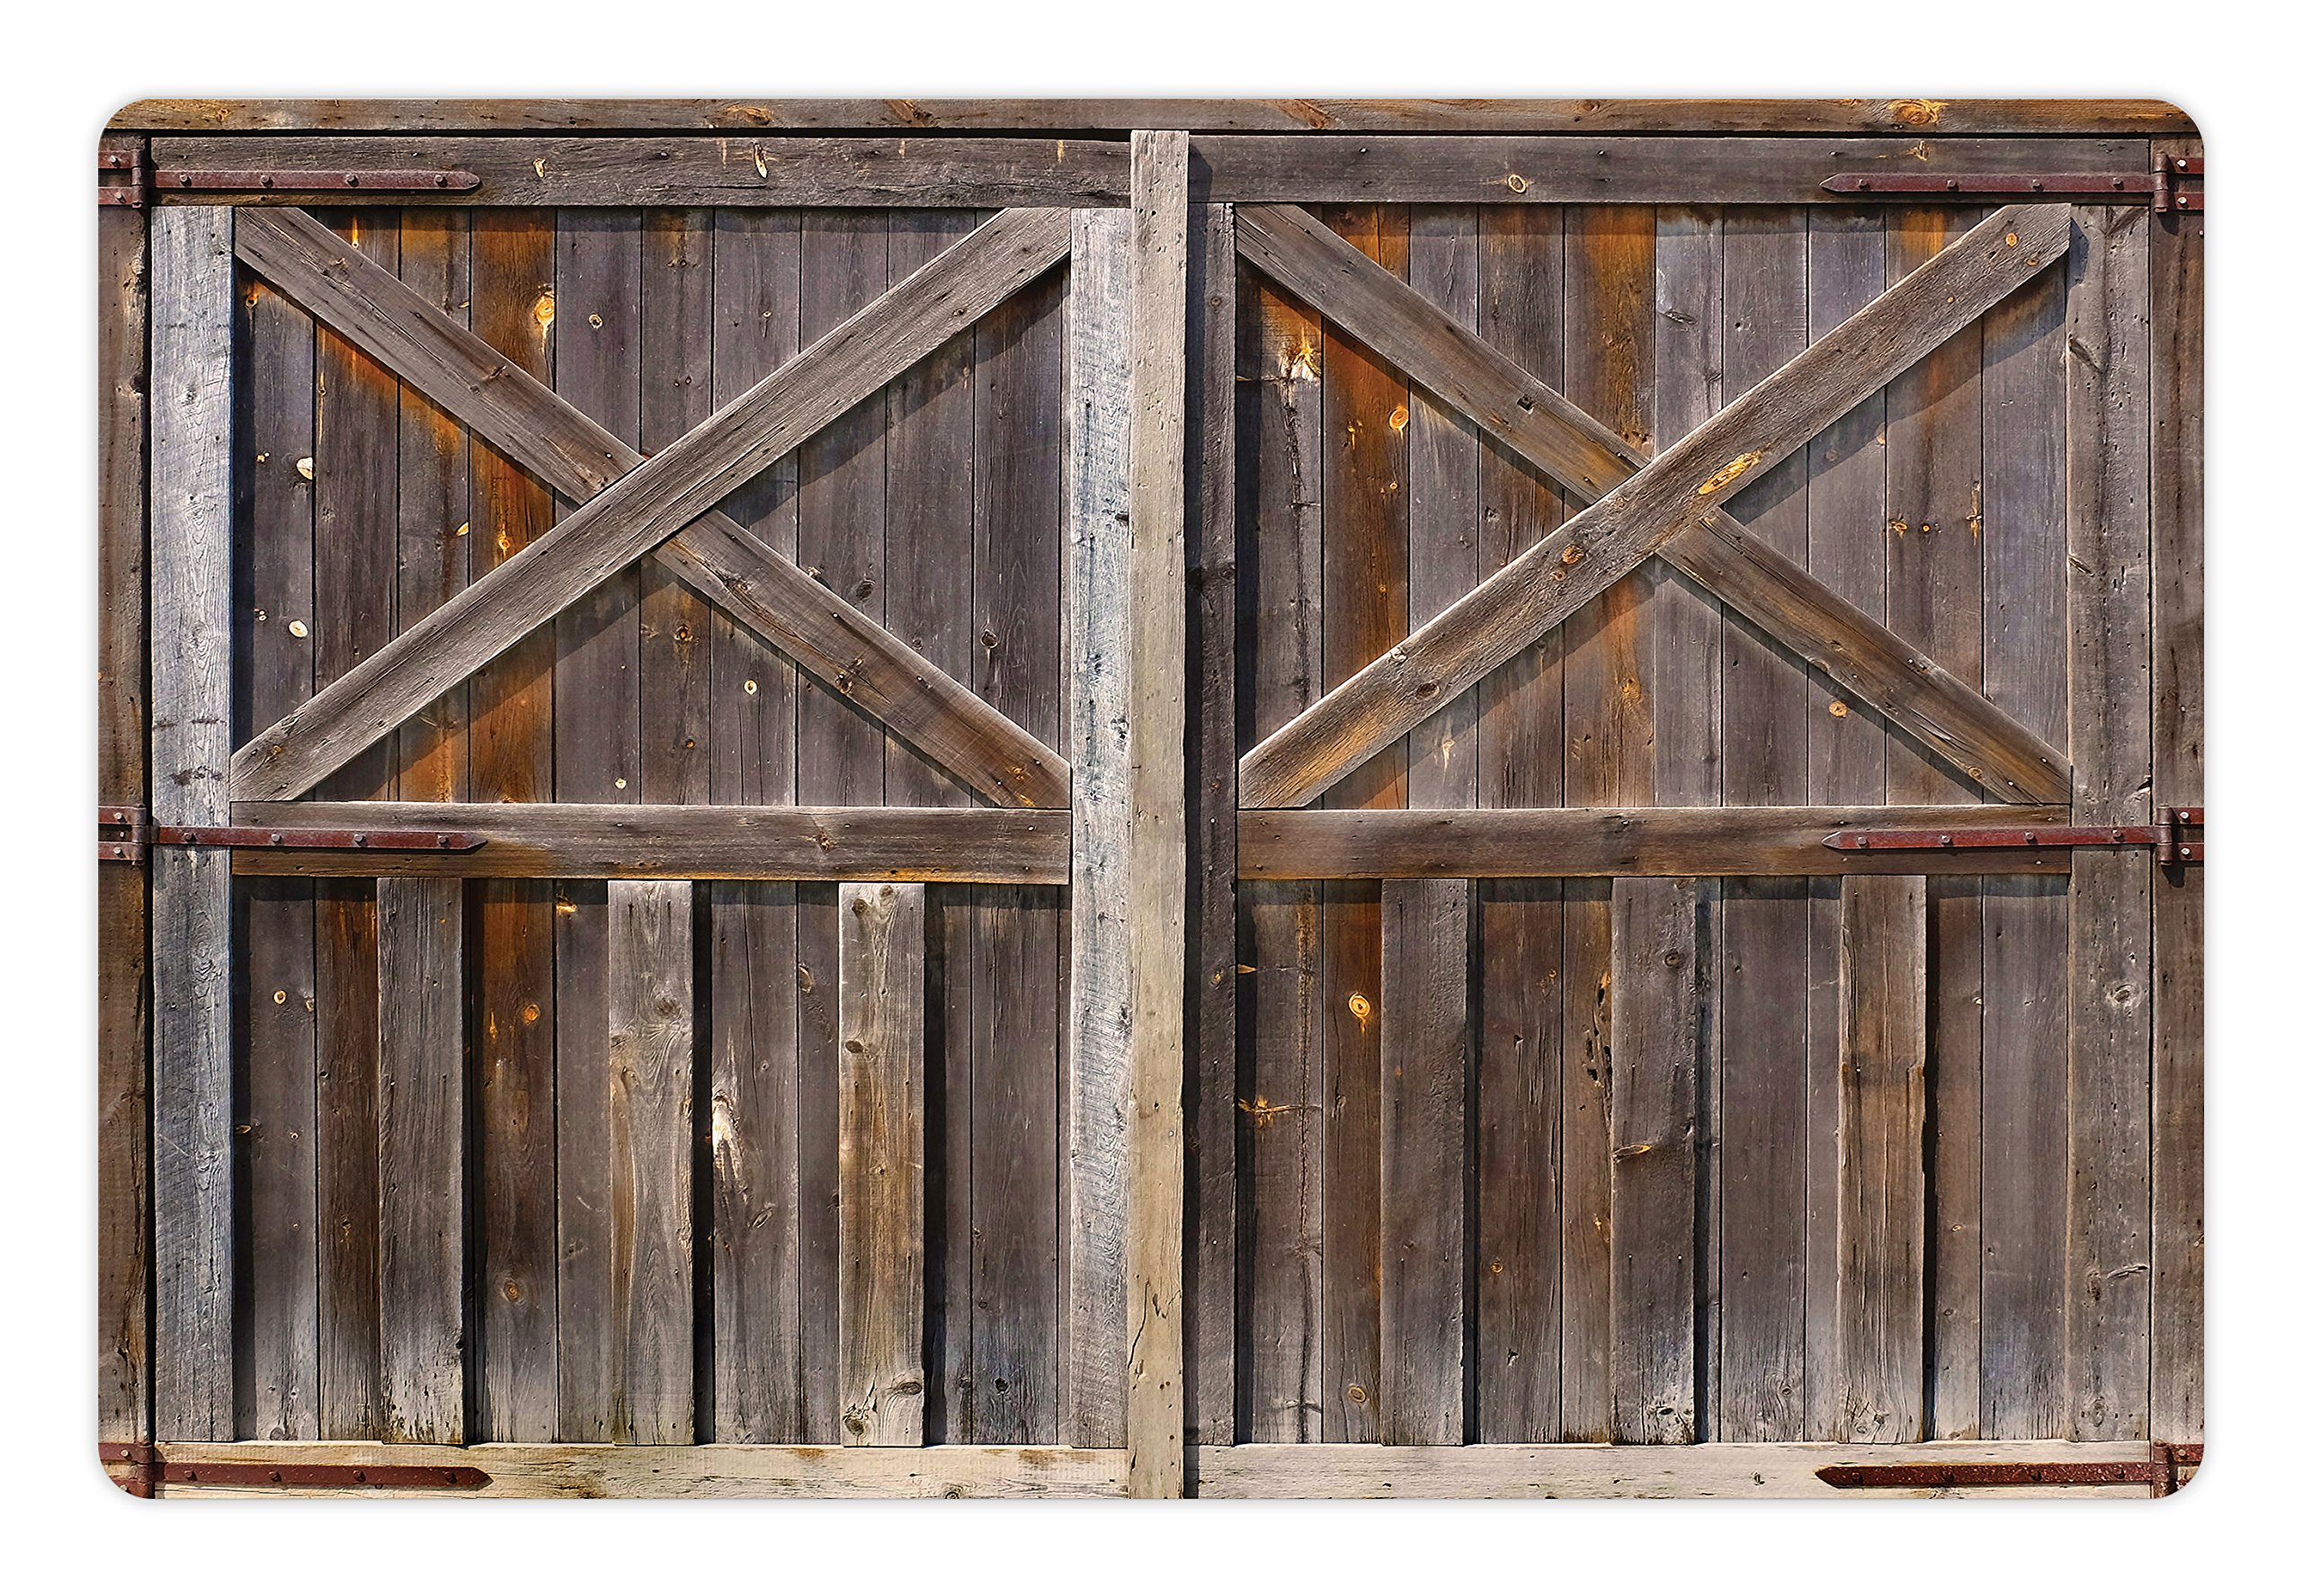 Ambesonne Rustic Pet Mat for Food and Water, Old Wooden Barn Door of Farmhouse Oak Countryside Village Board Rural Life Photo Print, Rectangle Non-Slip Rubber Mat for Dogs and Cats, Brown